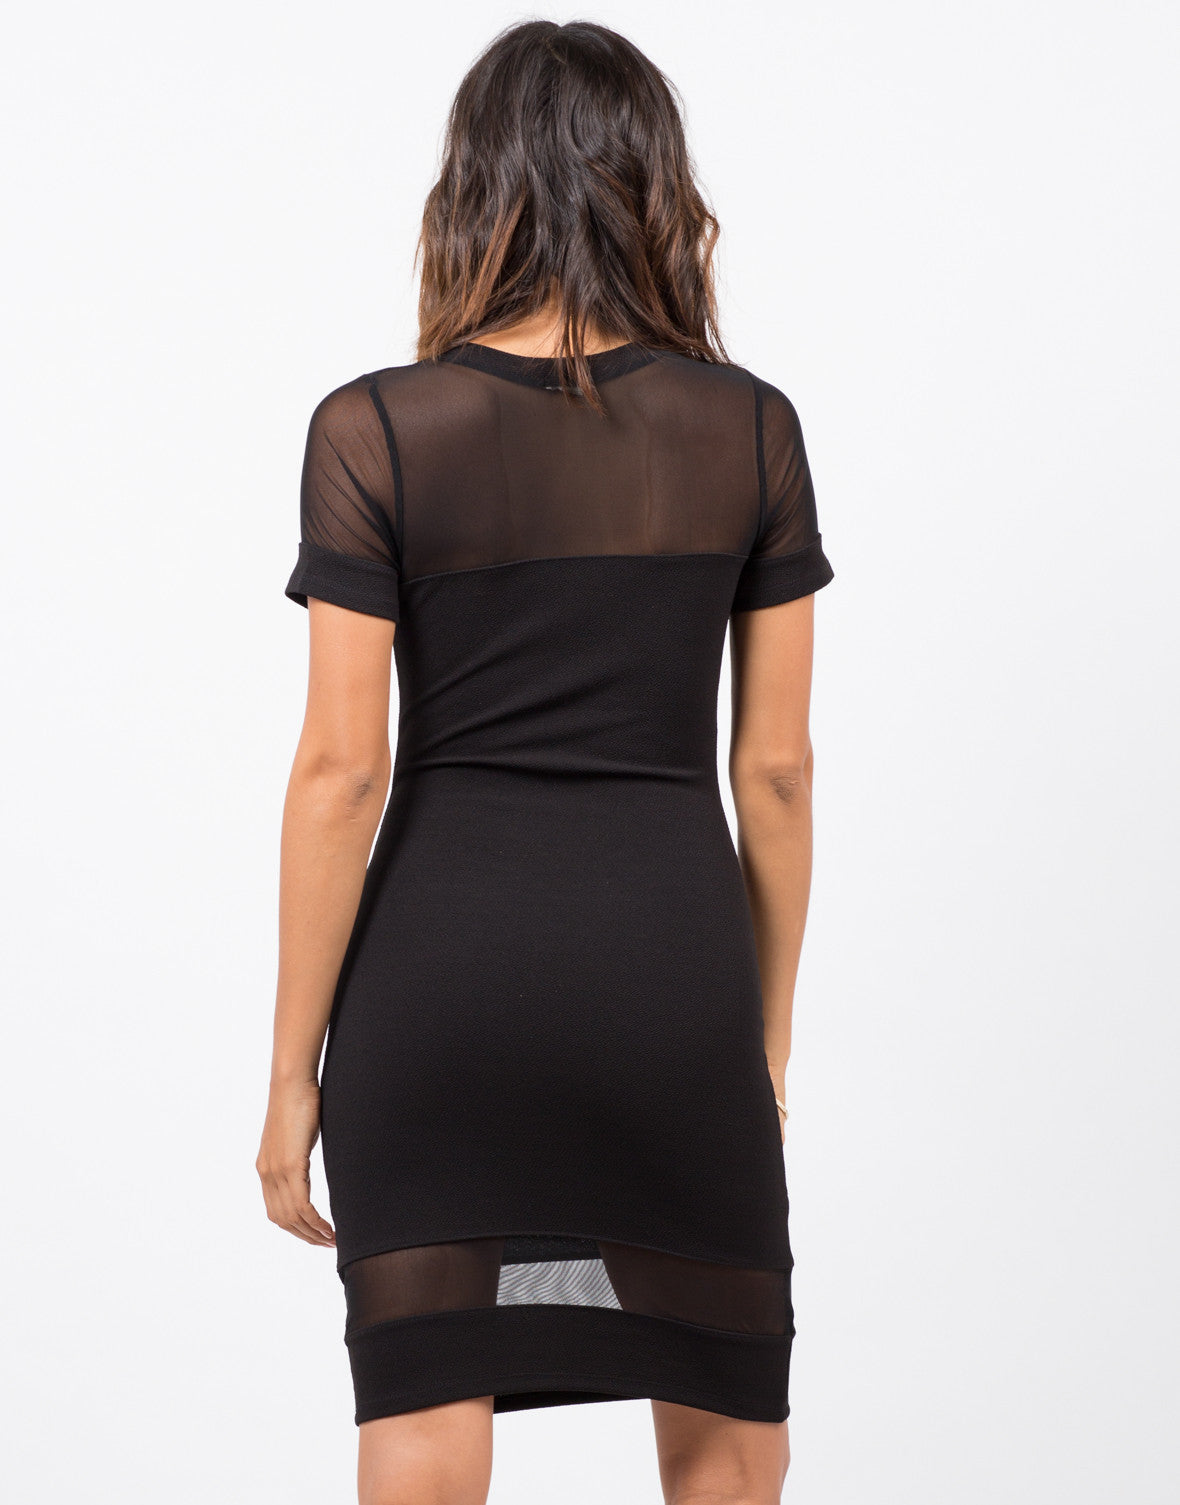 Back View of Meshy Bodycon Dress